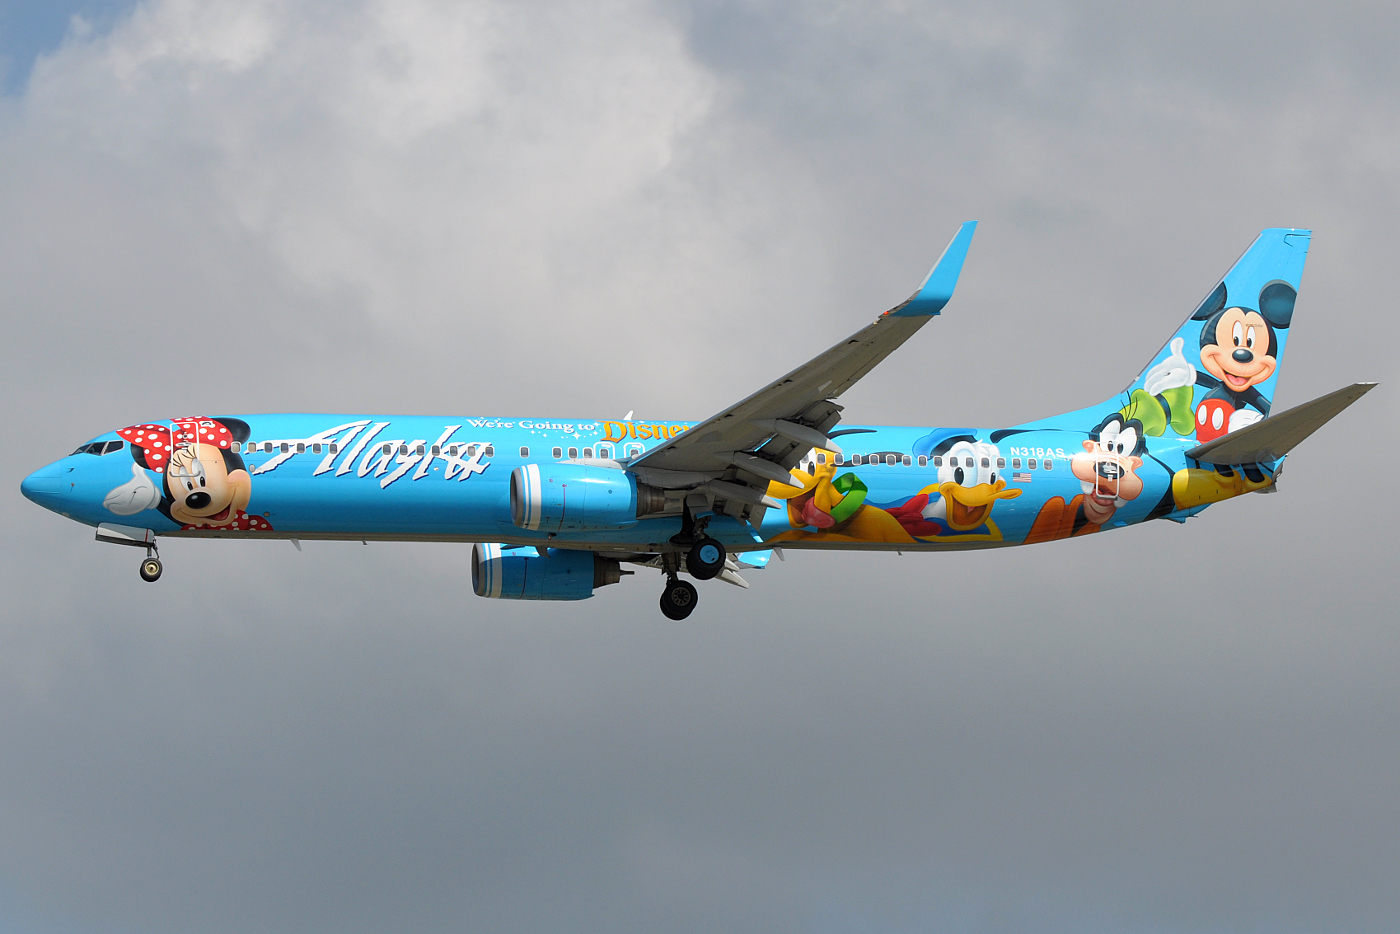 Left side view of a light blue aircraft adorned with Mickey Mouse and other Disney characters, with dark clouds in the background.